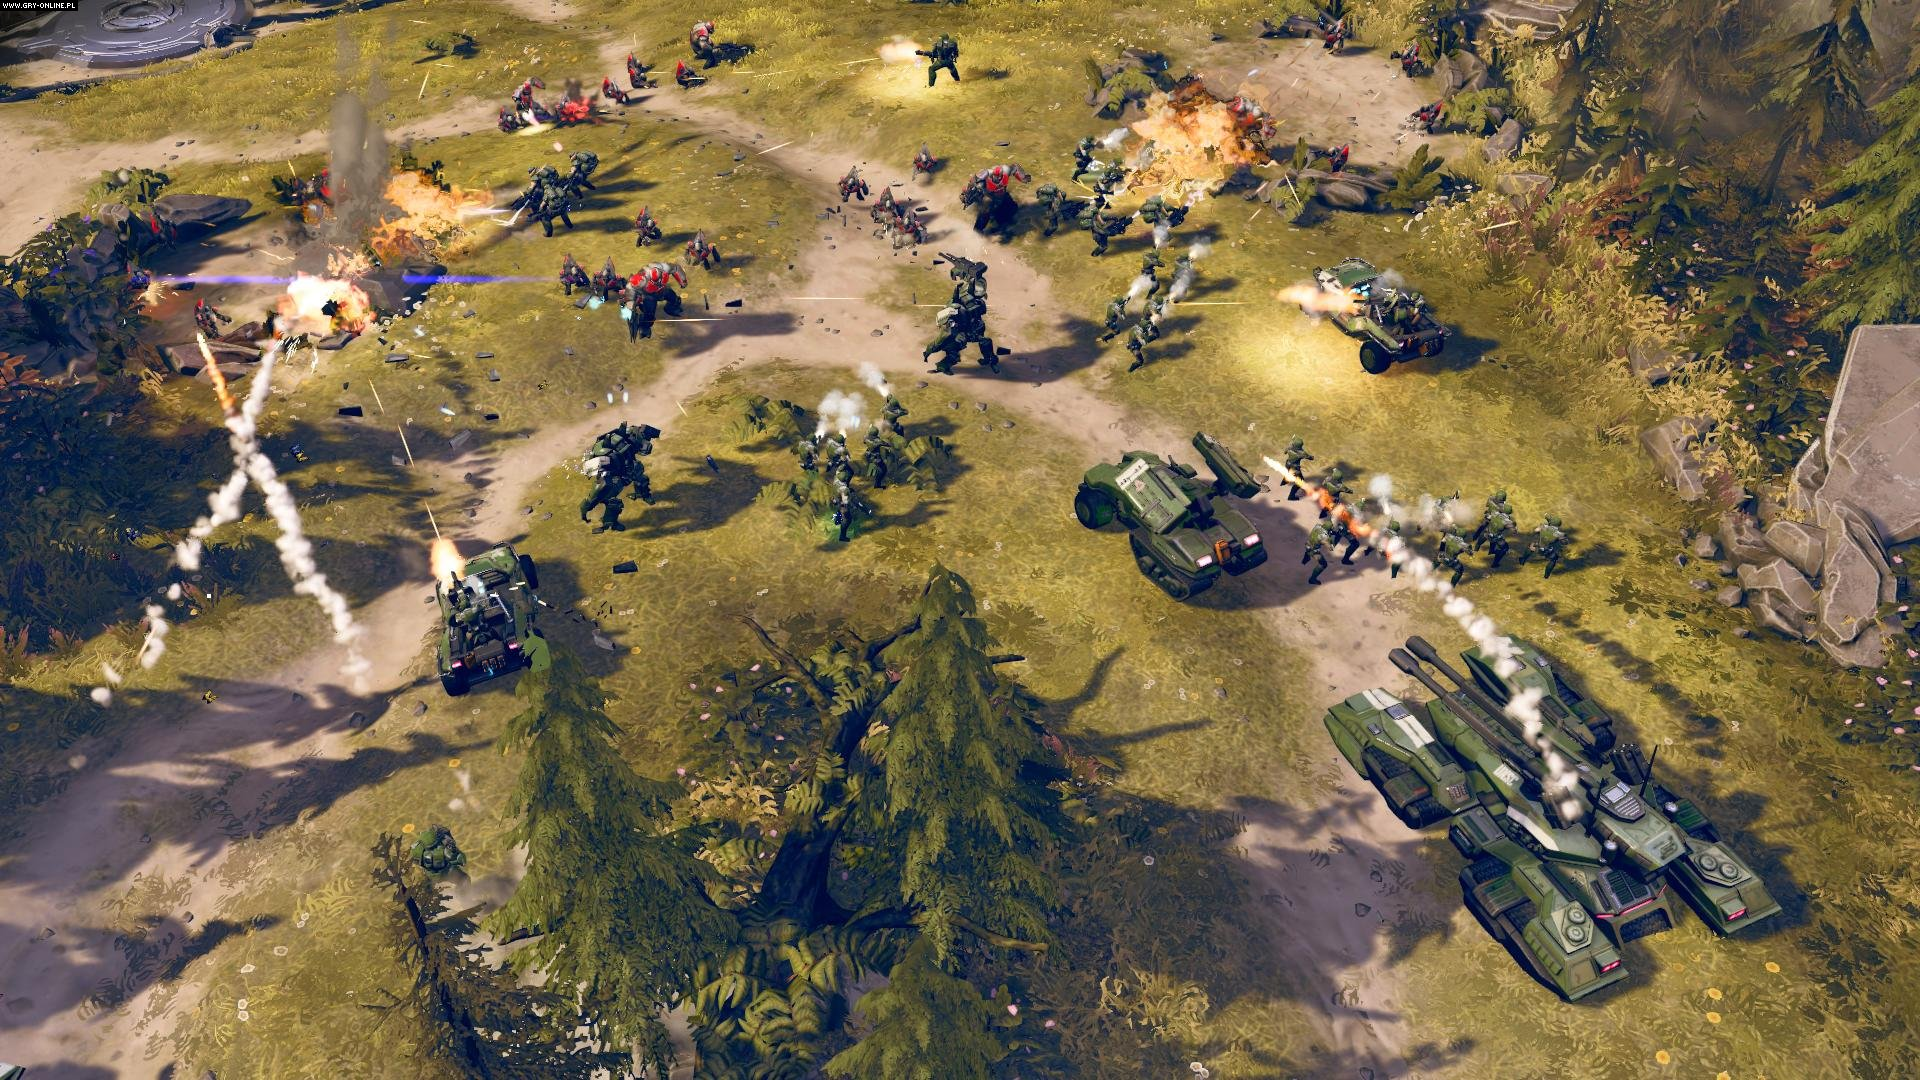 Halo Wars 2 XONE, PC Games Image 14/18, Creative Assembly, THQ Nordic / Nordic Games